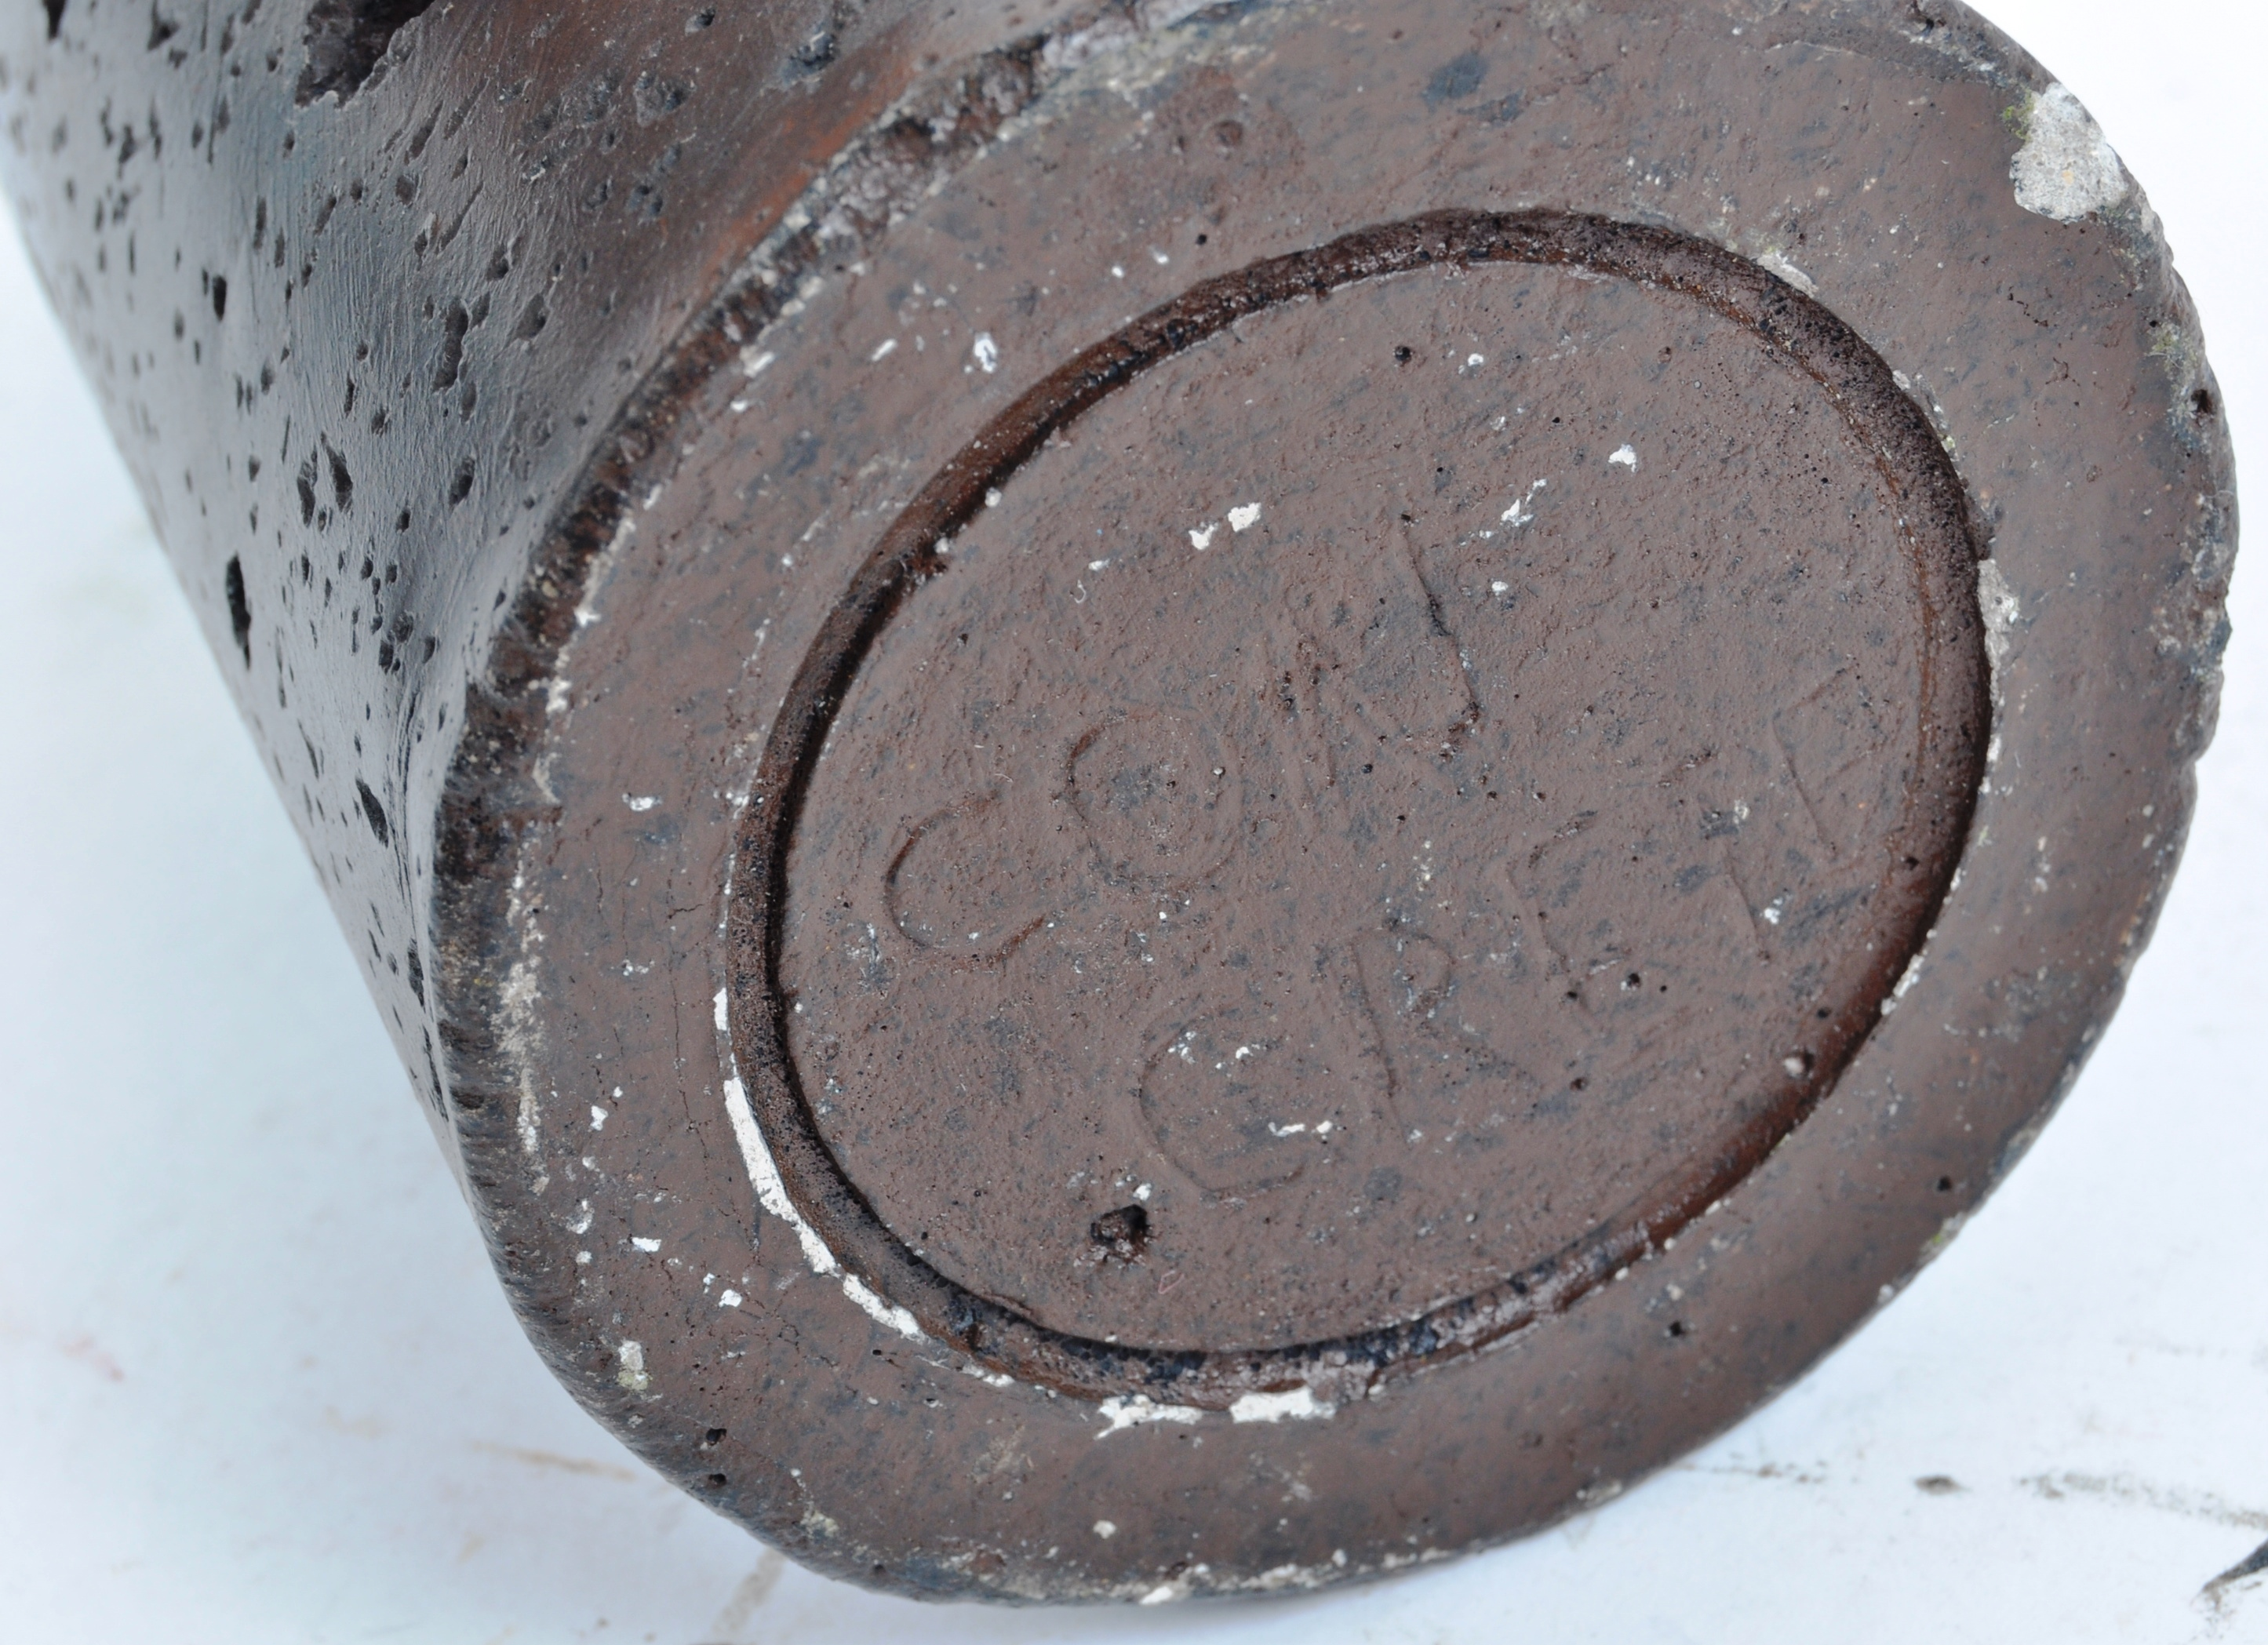 LARGE WWII VINTAGE BRITISH ARMY HIGH EXPLOSIVE PRACTISE ROUND - Image 4 of 5